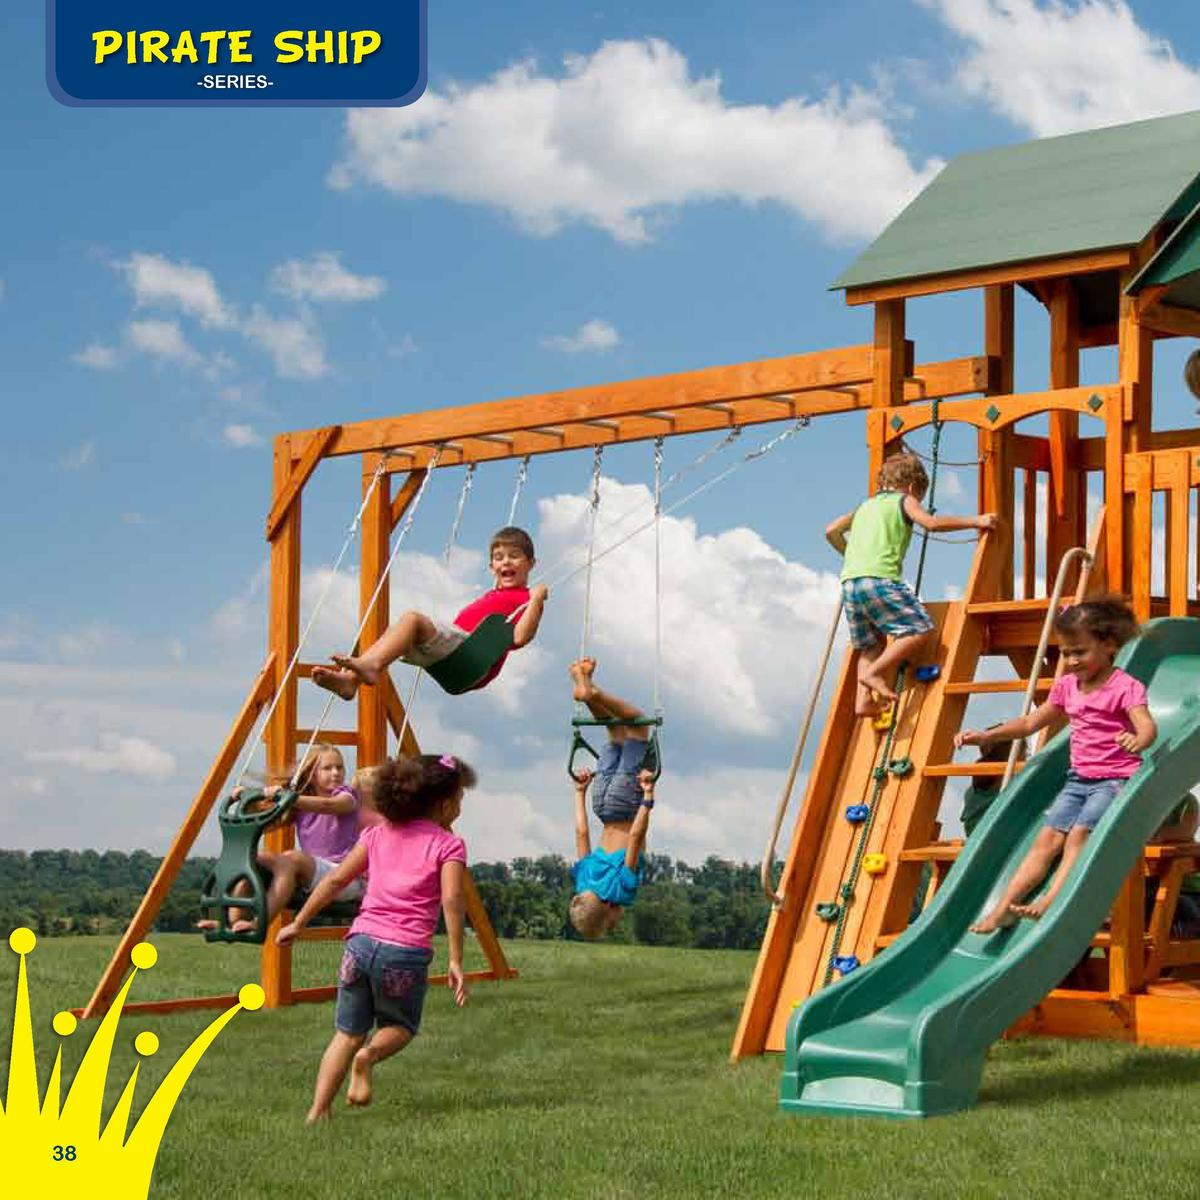 Play Deck Roofing Choices  PIRATE SHIP  The Safe Harbor  -SERIESFabric  Plastic  Clap Board  Border Needed   86 Space Need...